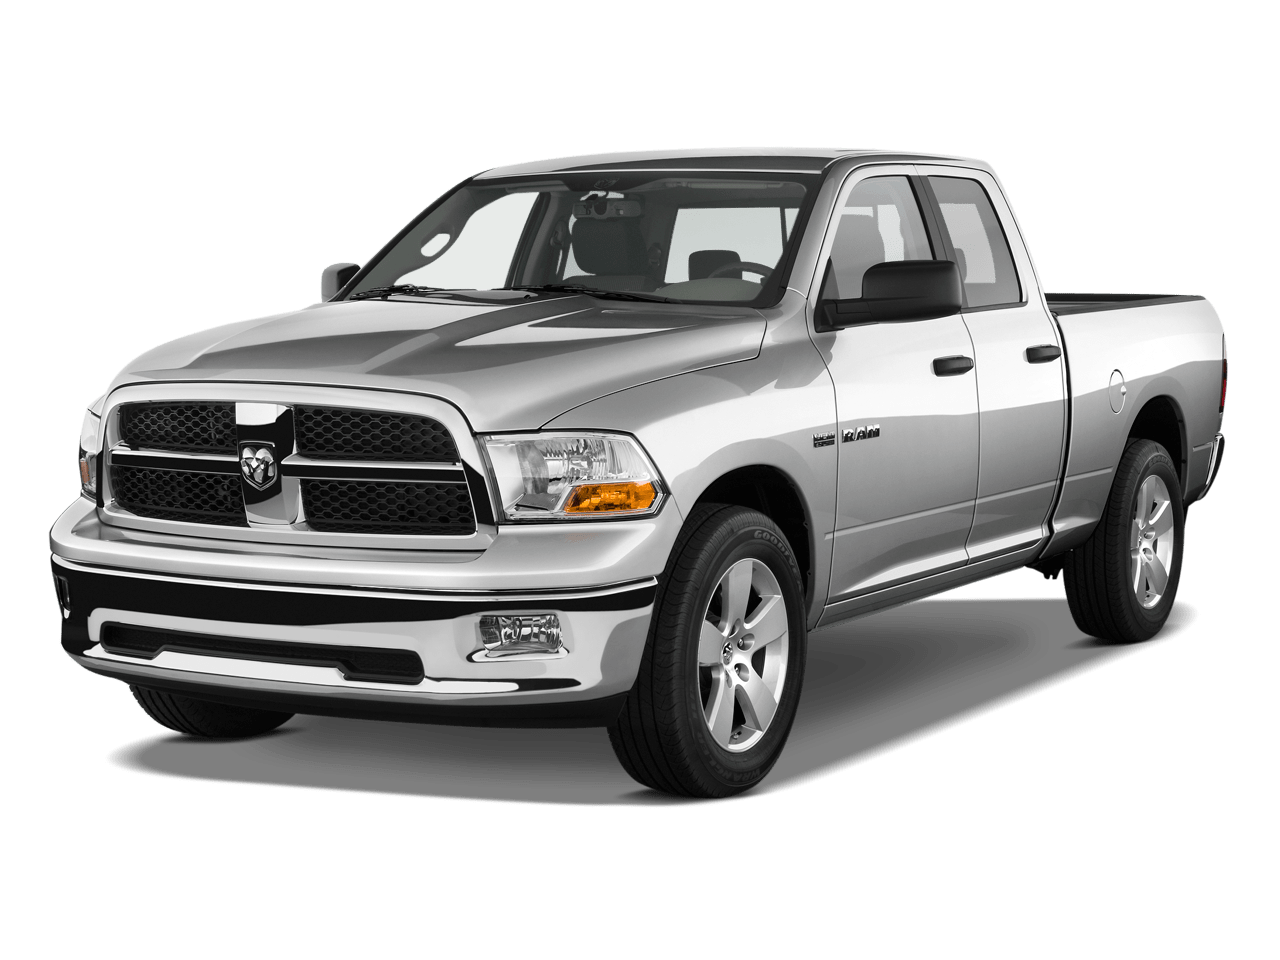 hight resolution of 2009 dodge ram 1500 reviews and rating motortrend2011 dodge ram 57 hemi serpentine belt diagram